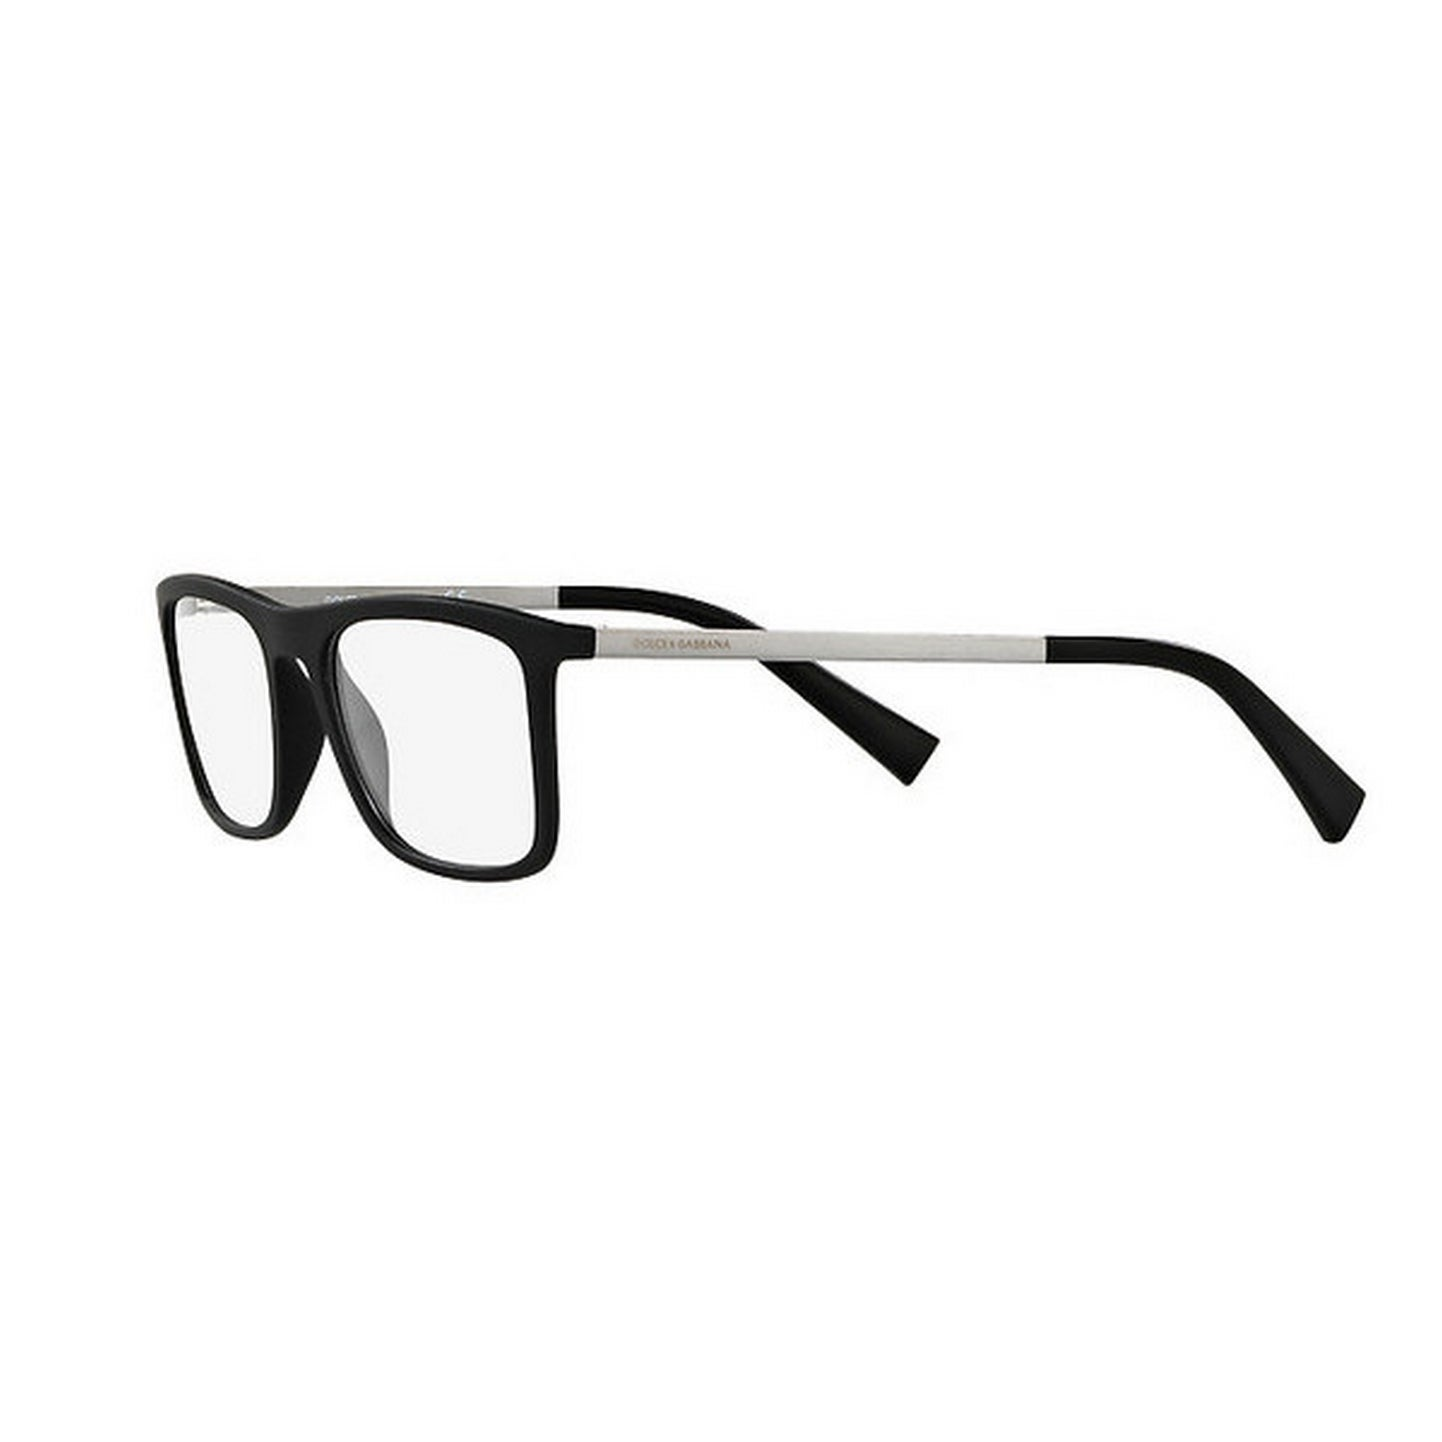 c8a4fb750466 Shop Dolce   Gabbana Men s DG5023 2805 52 Square Plastic Black Clear  Eyeglasses - Free Shipping Today - Overstock - 14780122